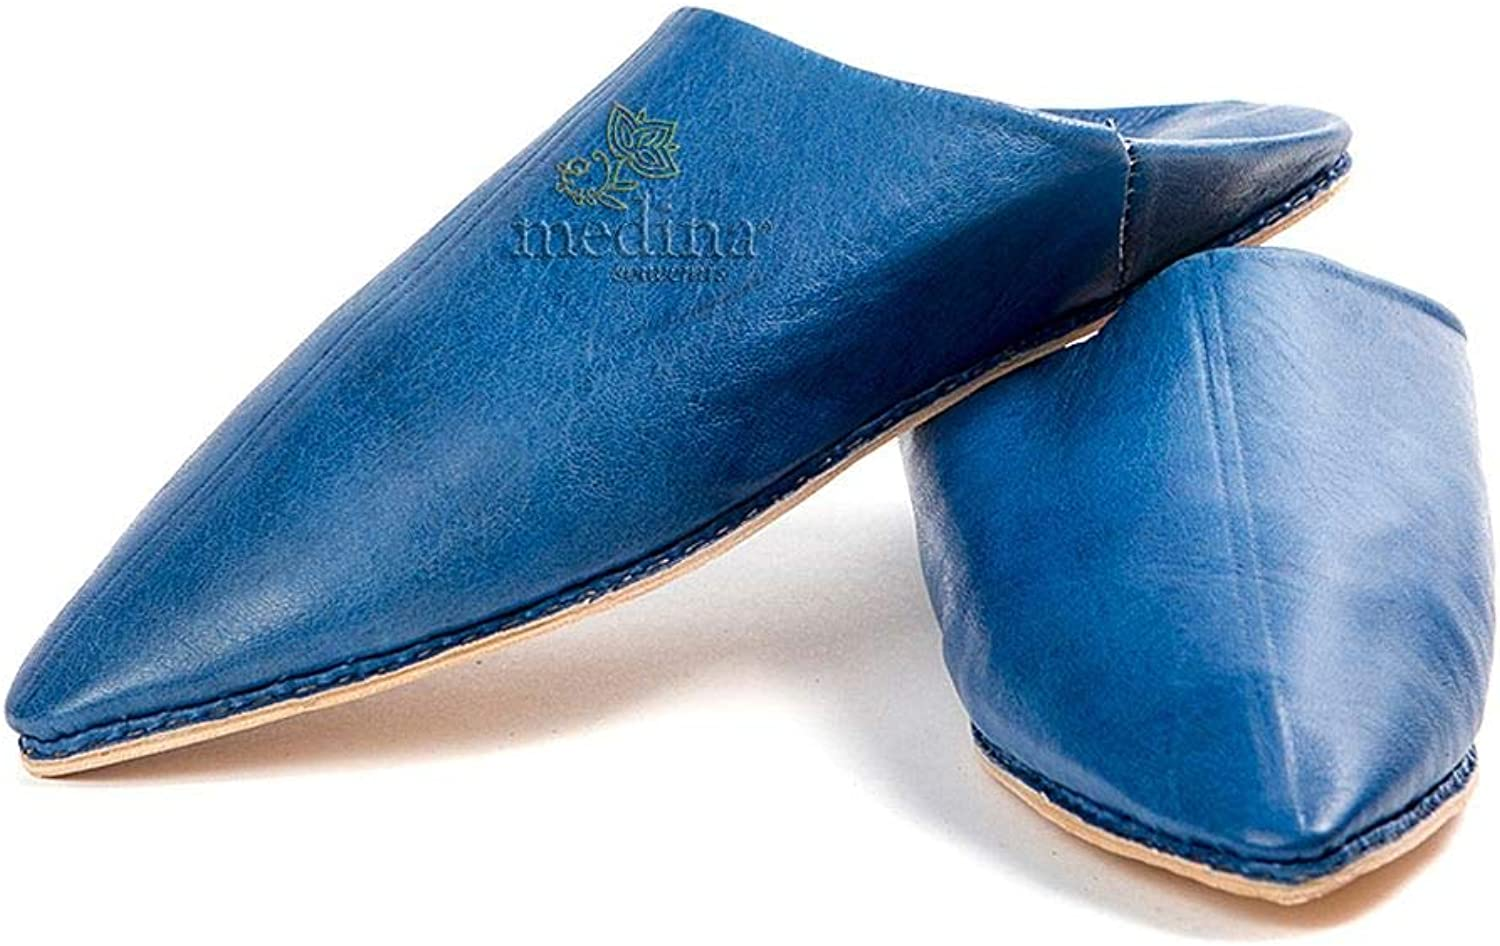 Medina Souvenirs Man and Woman Slipper Traditional bluee Jeans, Pointed Out Marrakech Babouche Slippers Stitched Hand